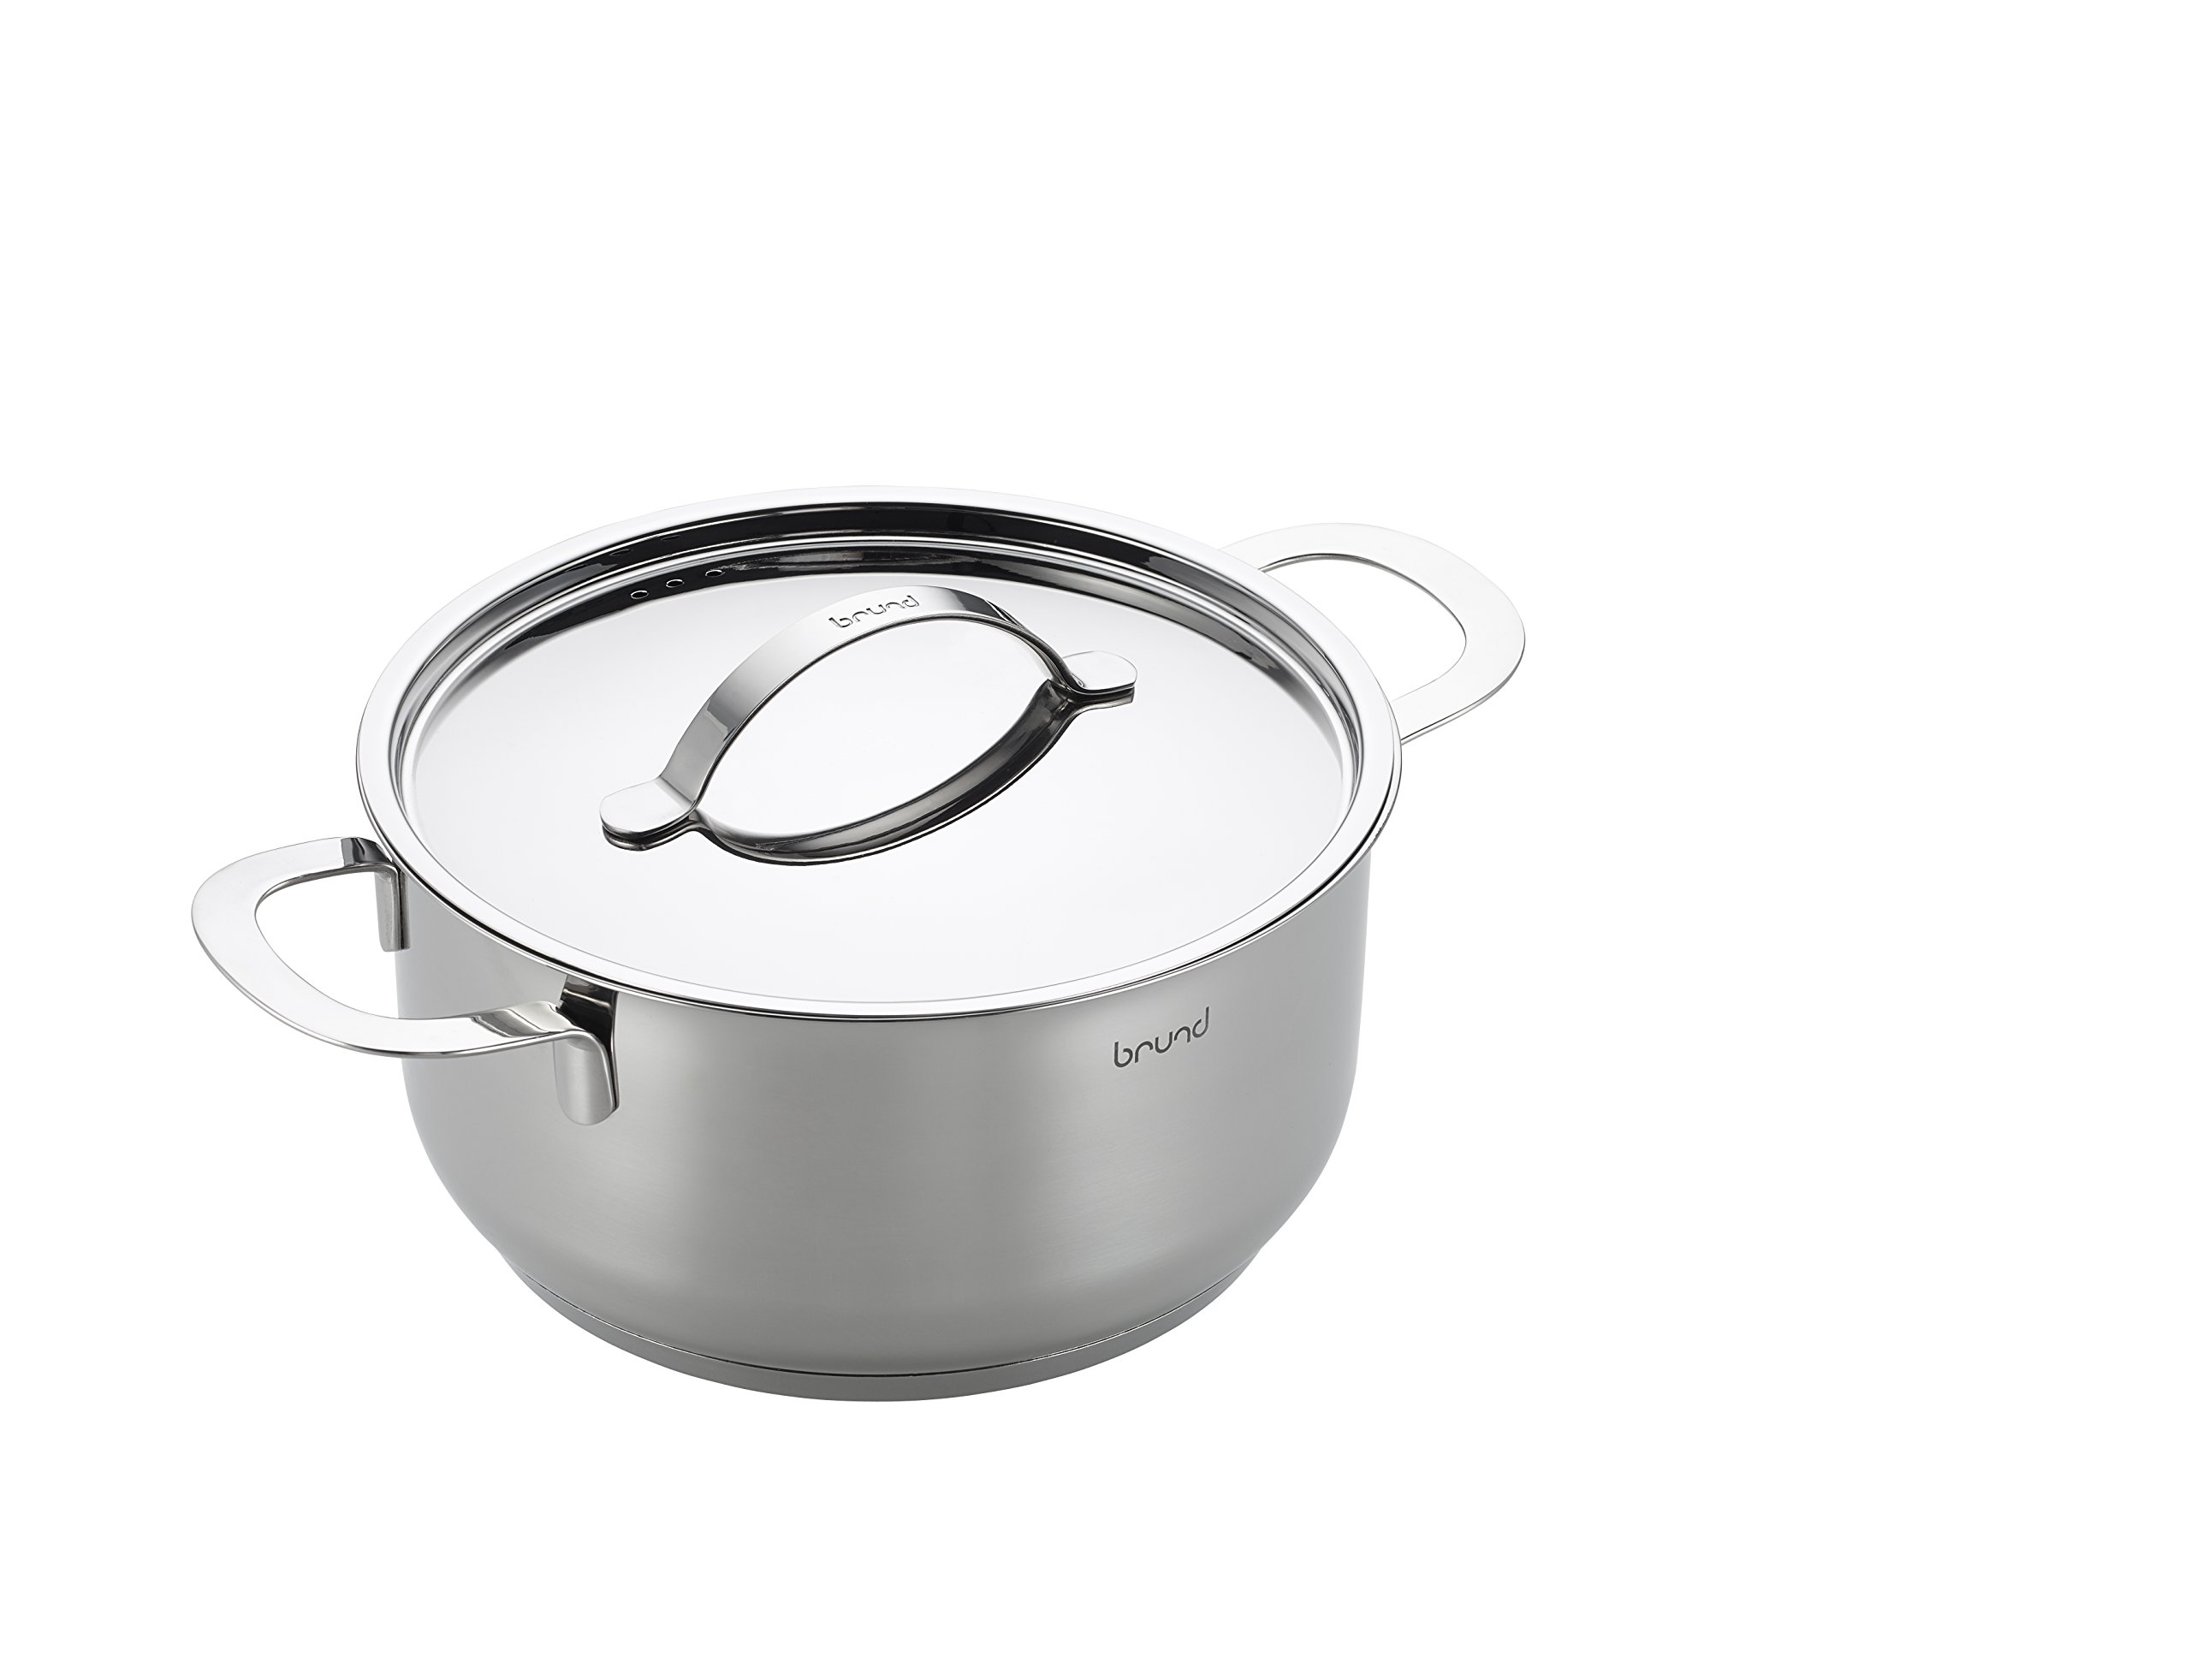 Brund Energy Dutch Oven, 4 Quart, Stainless Steel